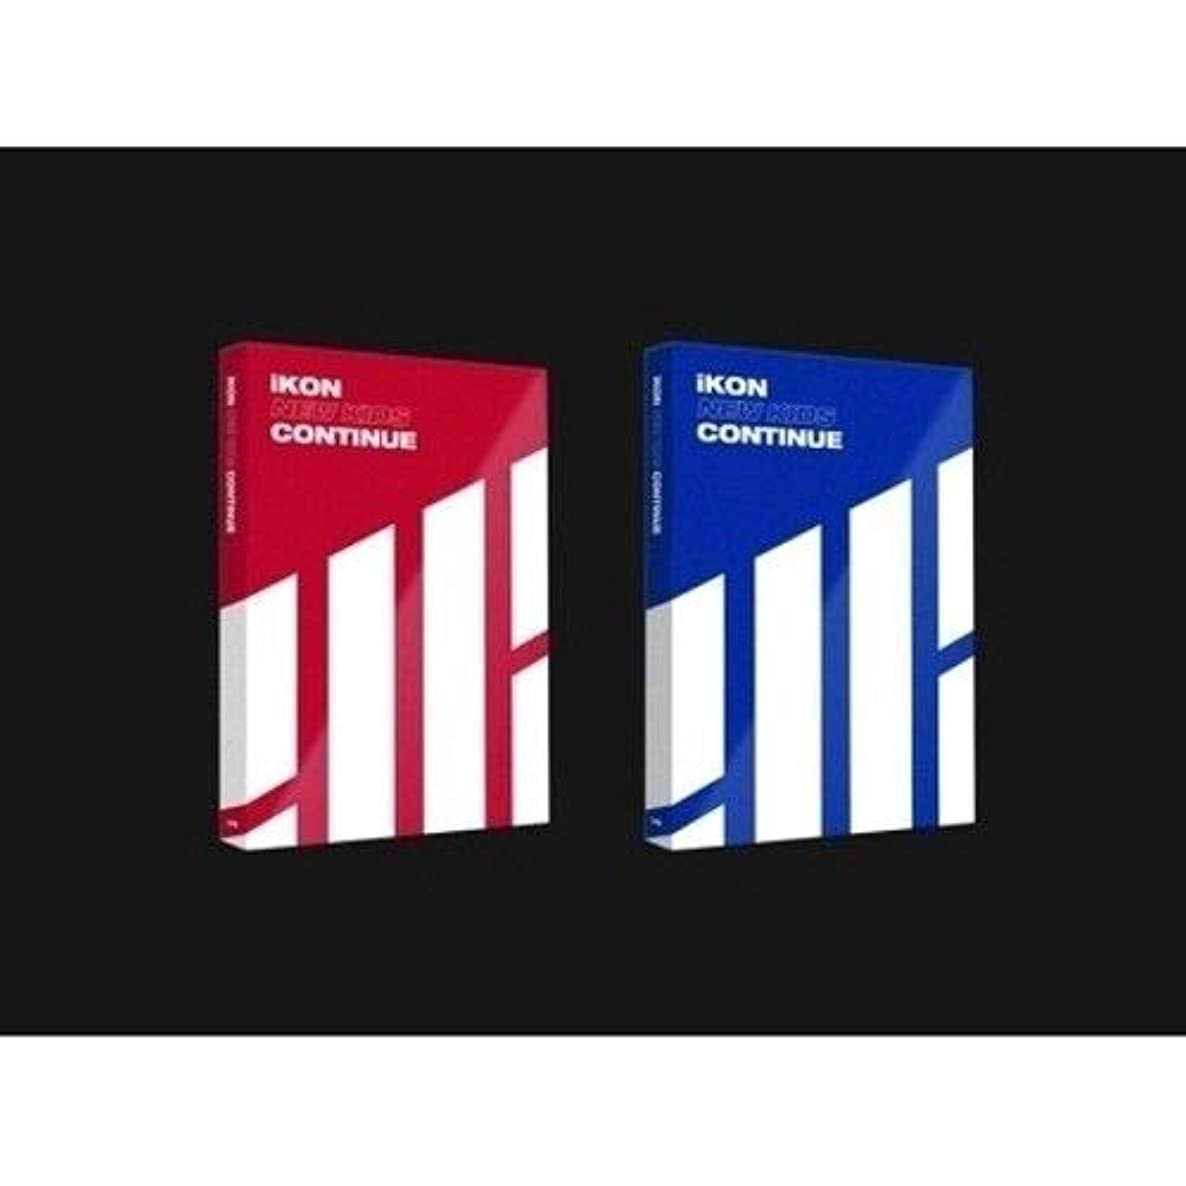 iKON - [New Kids Continue] Album 2 Ver Set CD+88p PhotoBook+1p Accordion Postcard+1p PhotoCard K-POP Sealed